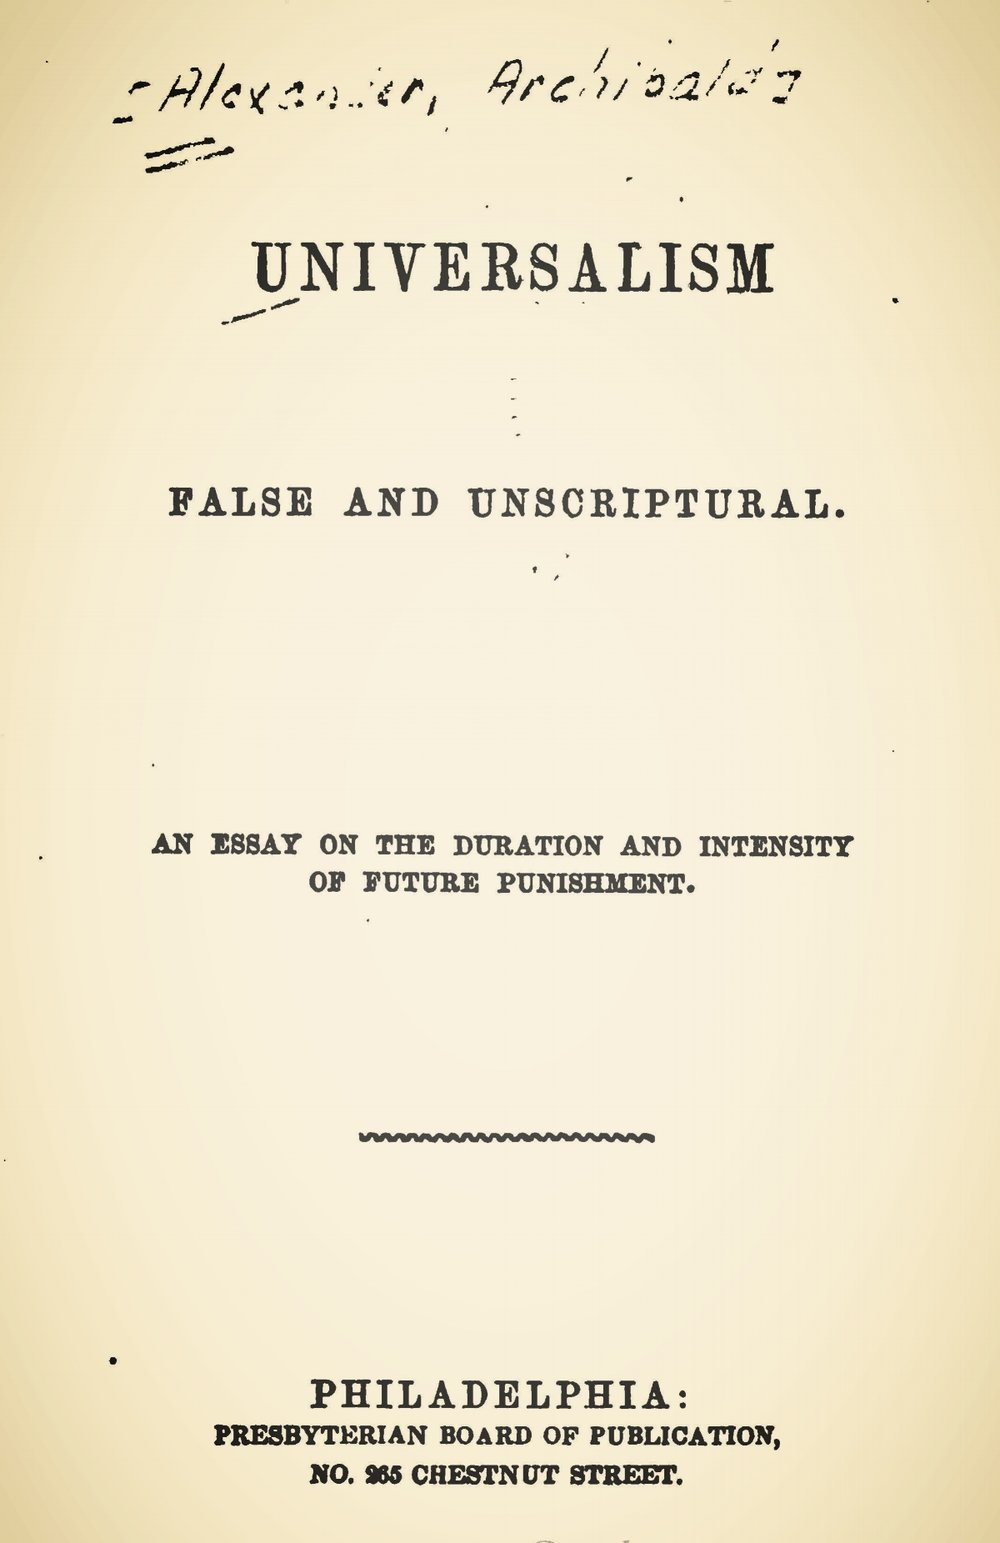 Alexander, Archibald, Universalism False and Unscriptural Title Page.jpg